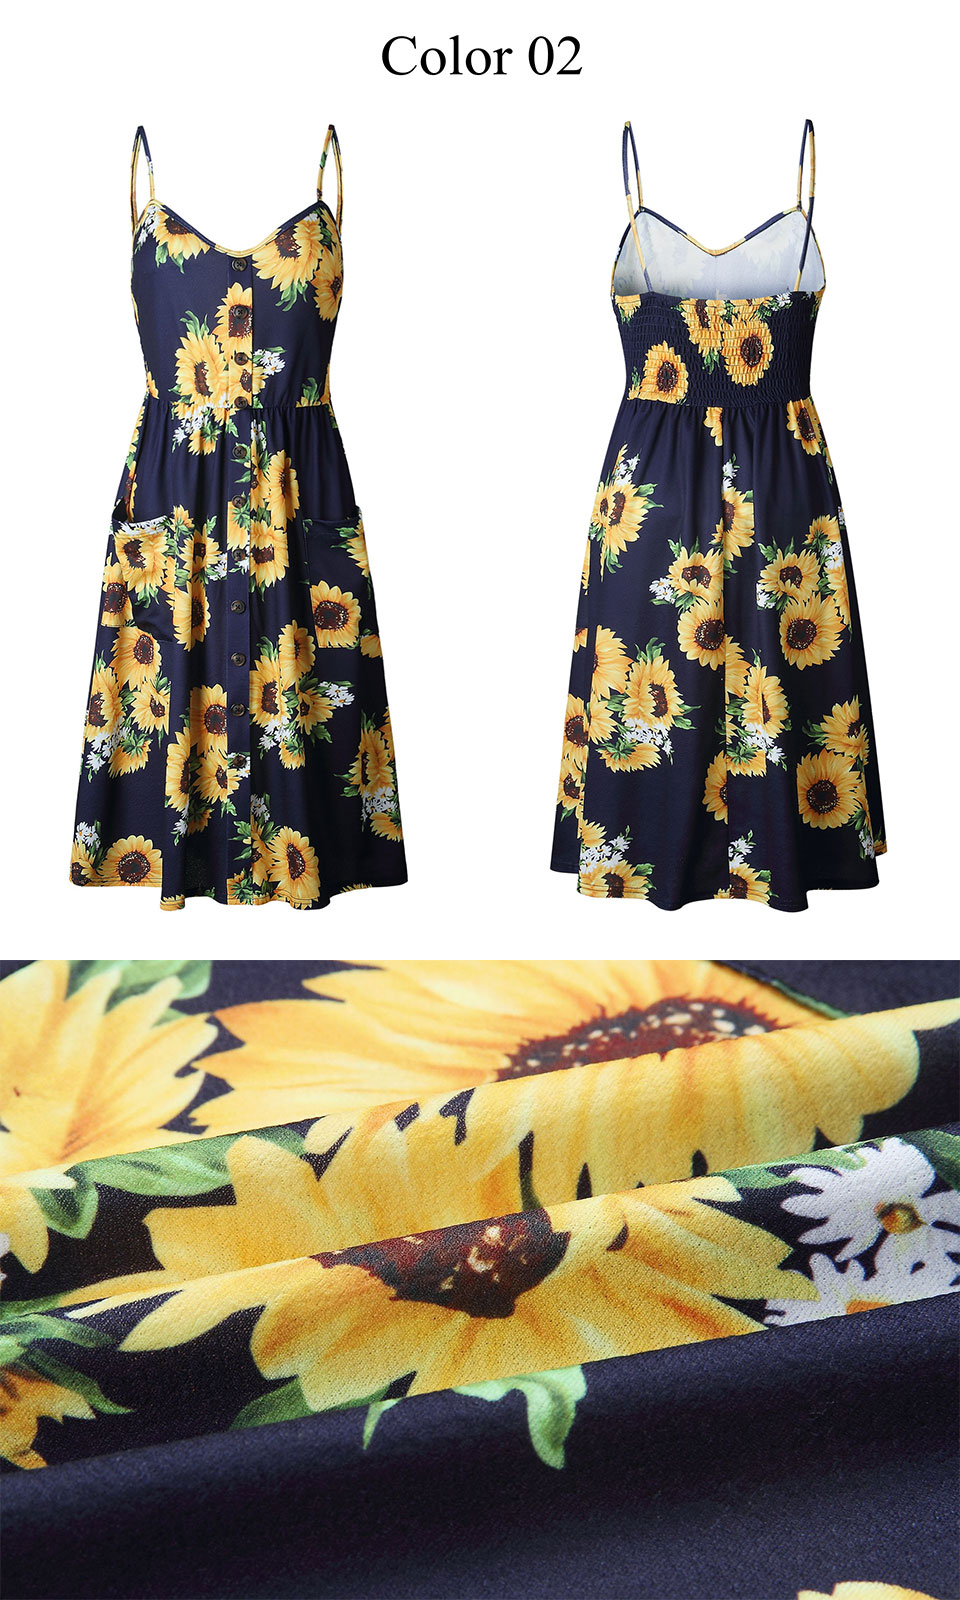 HTB1X KVTsfpK1RjSZFOq6y6nFXaD Vintage Army Green Sundress Women Summer Dress 2019 Boho Style Sexy Dress Midi Button Backless Striped Floral Beach Dress Female